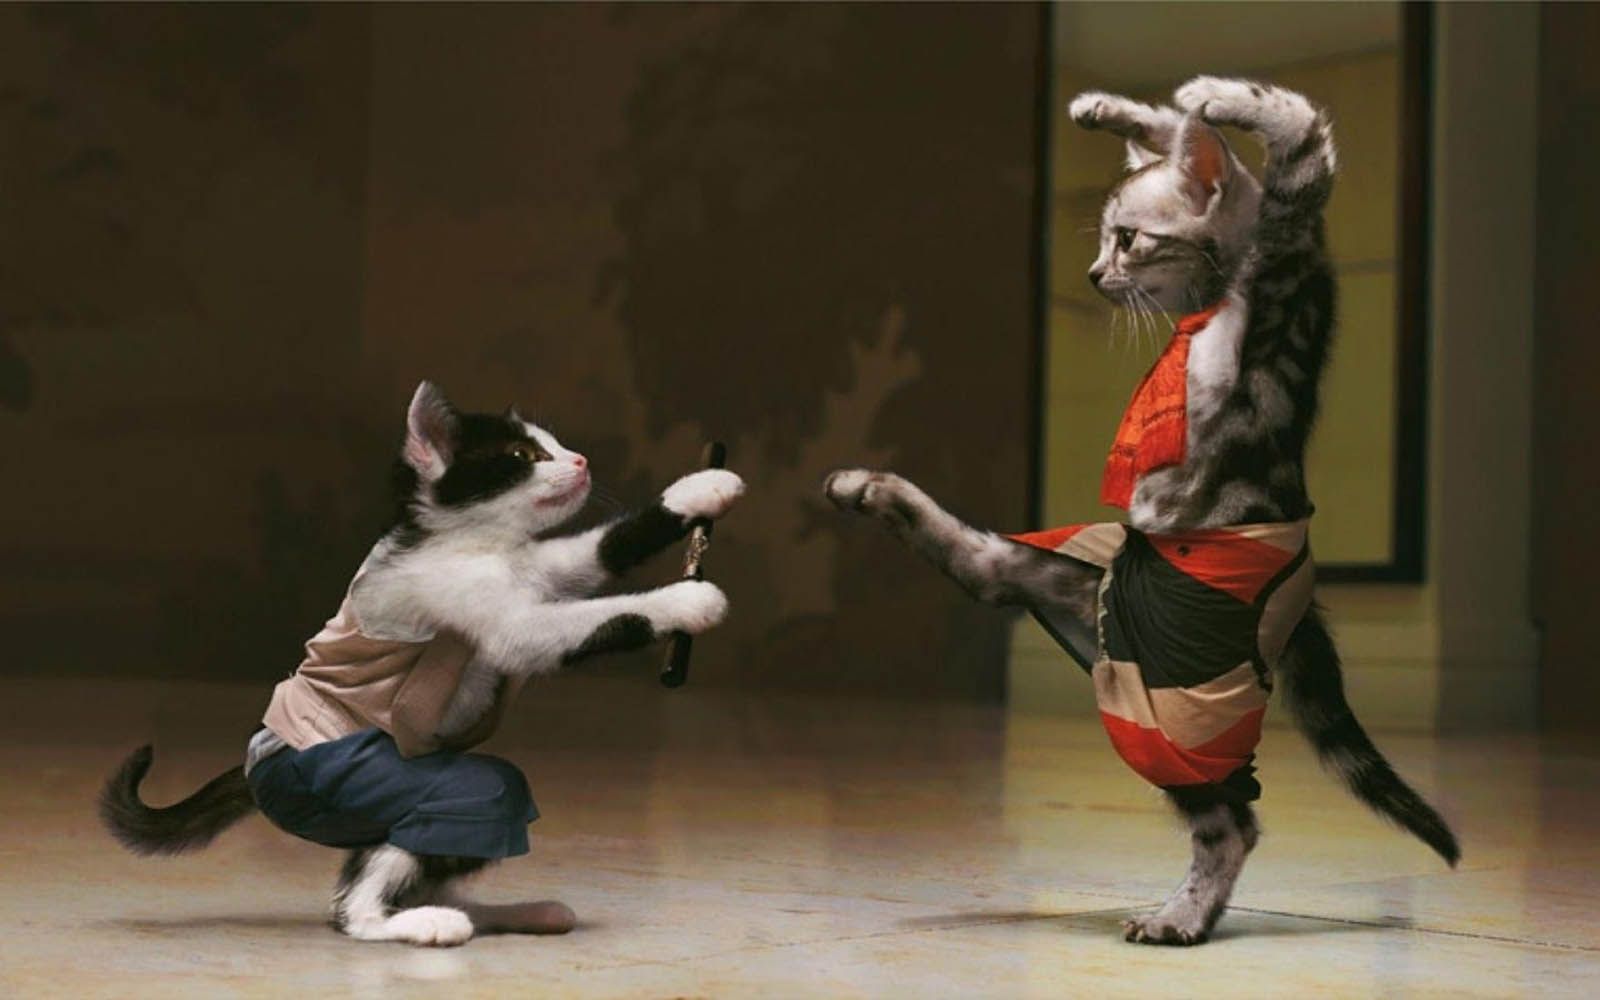 wallpapers Funny Cats Fight Wallpaper 1600x1000